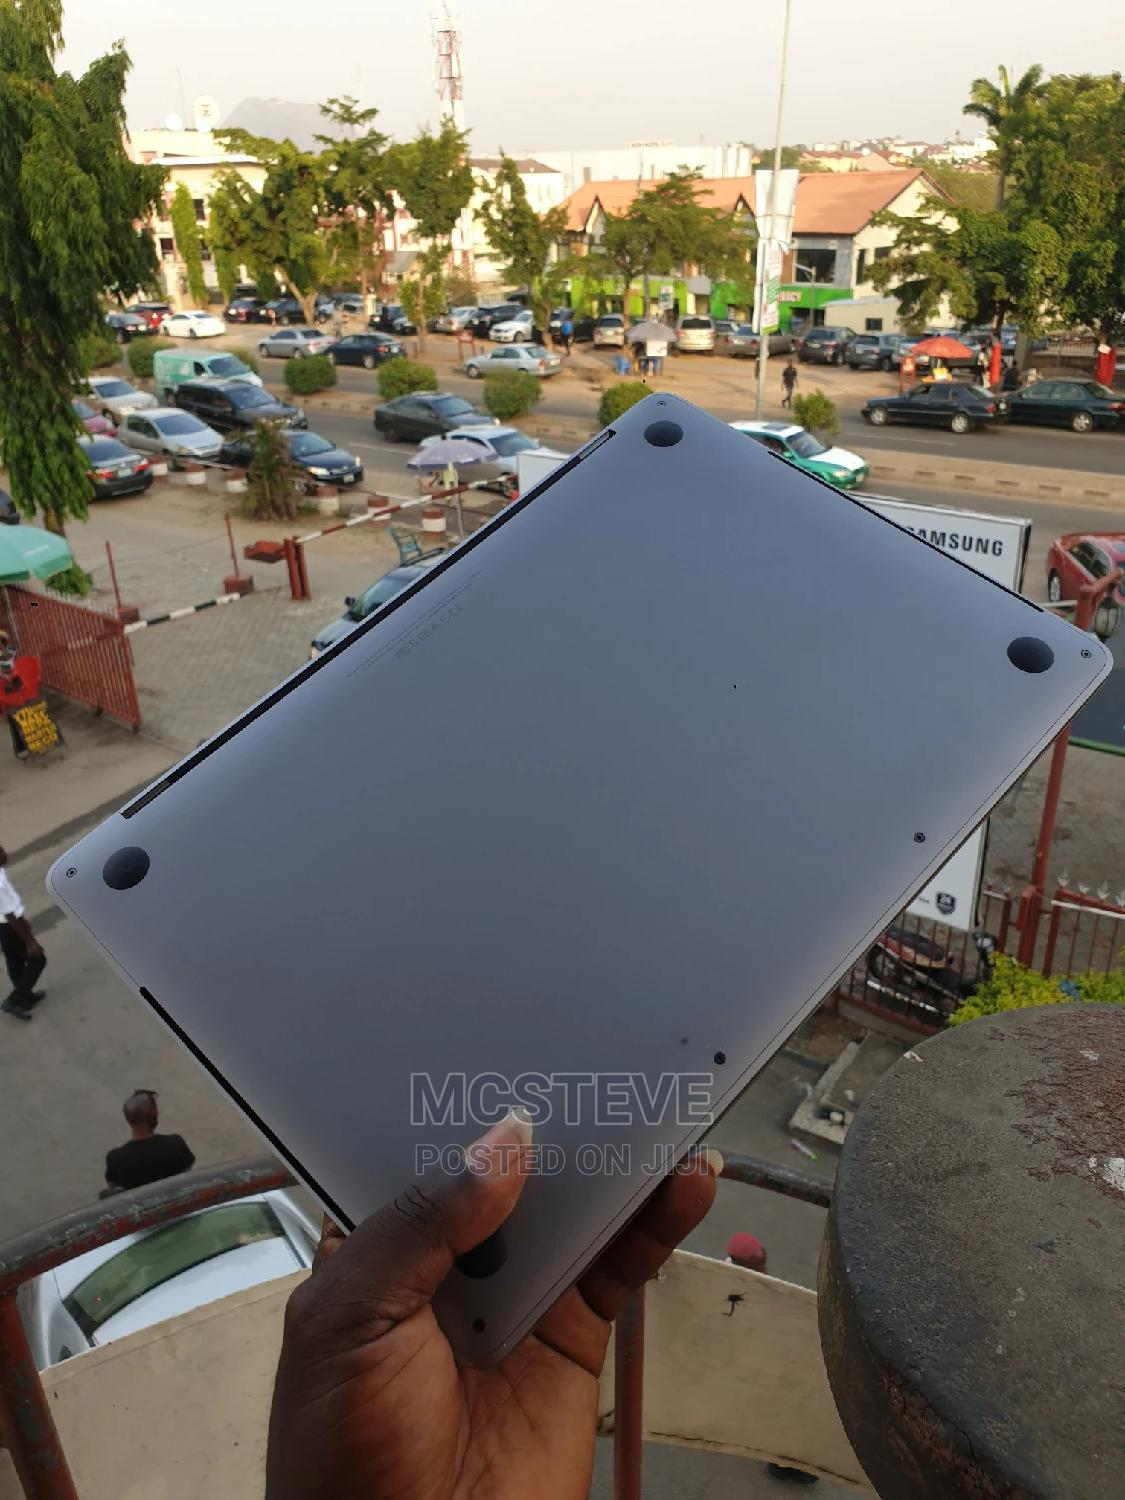 Laptop Apple MacBook 2016 8GB Intel Core I5 SSD 256GB | Laptops & Computers for sale in Wuse 2, Abuja (FCT) State, Nigeria